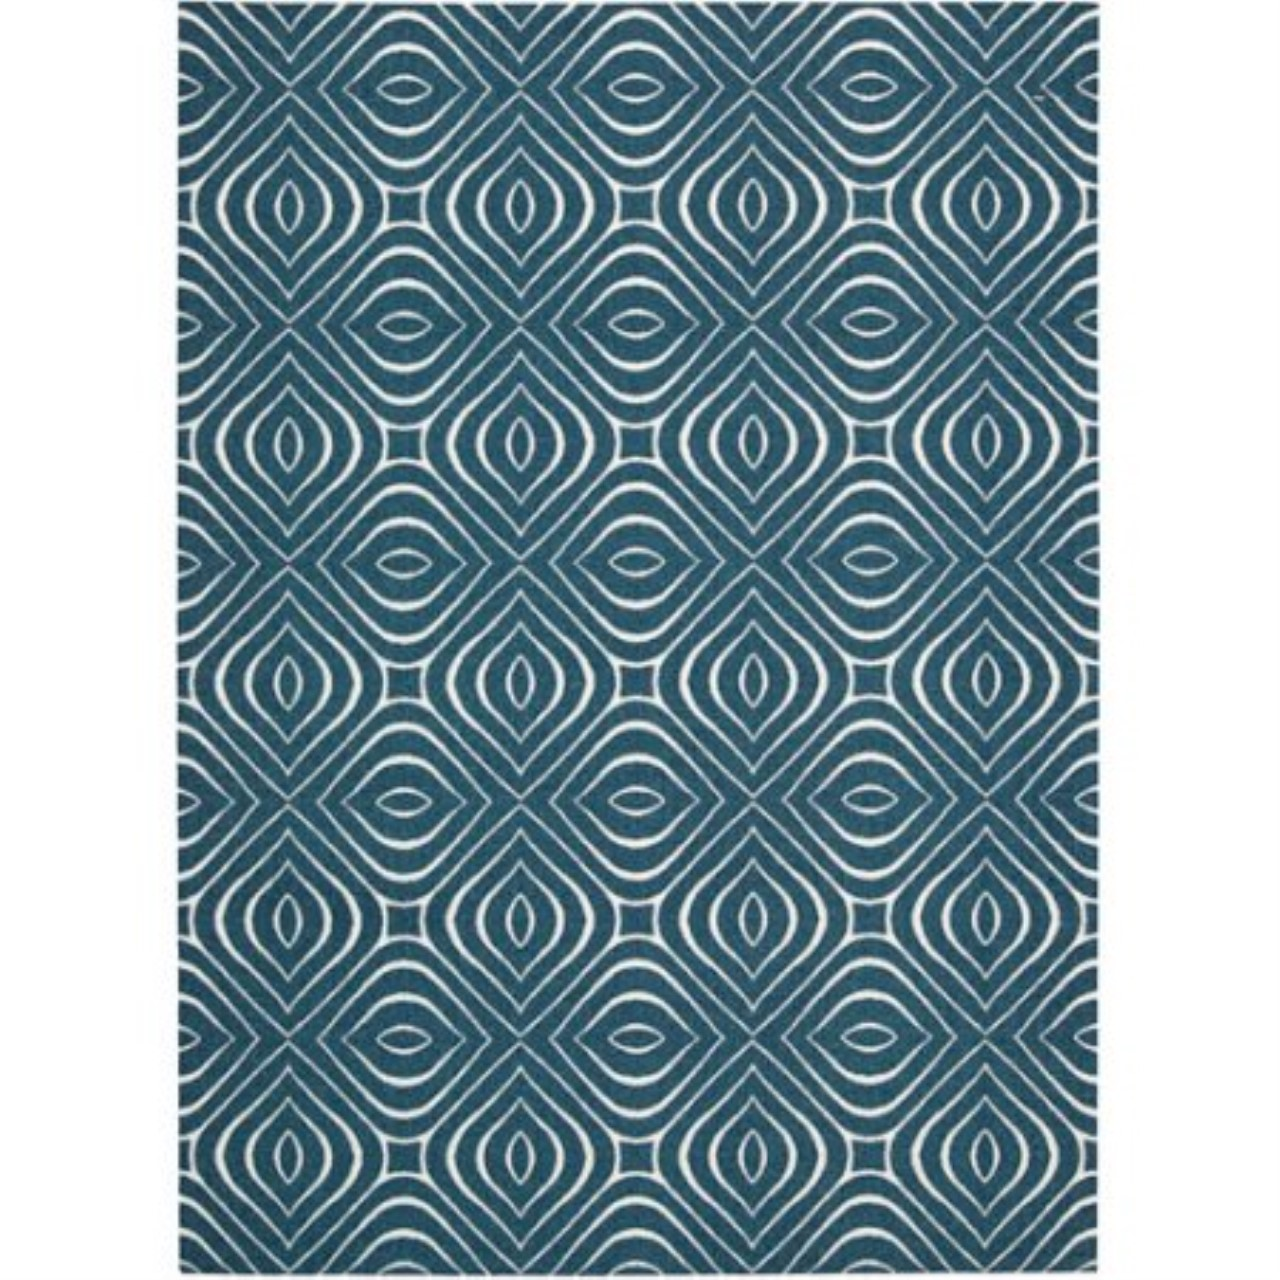 Enhance Machine Printed Iv/grey Area Rugs